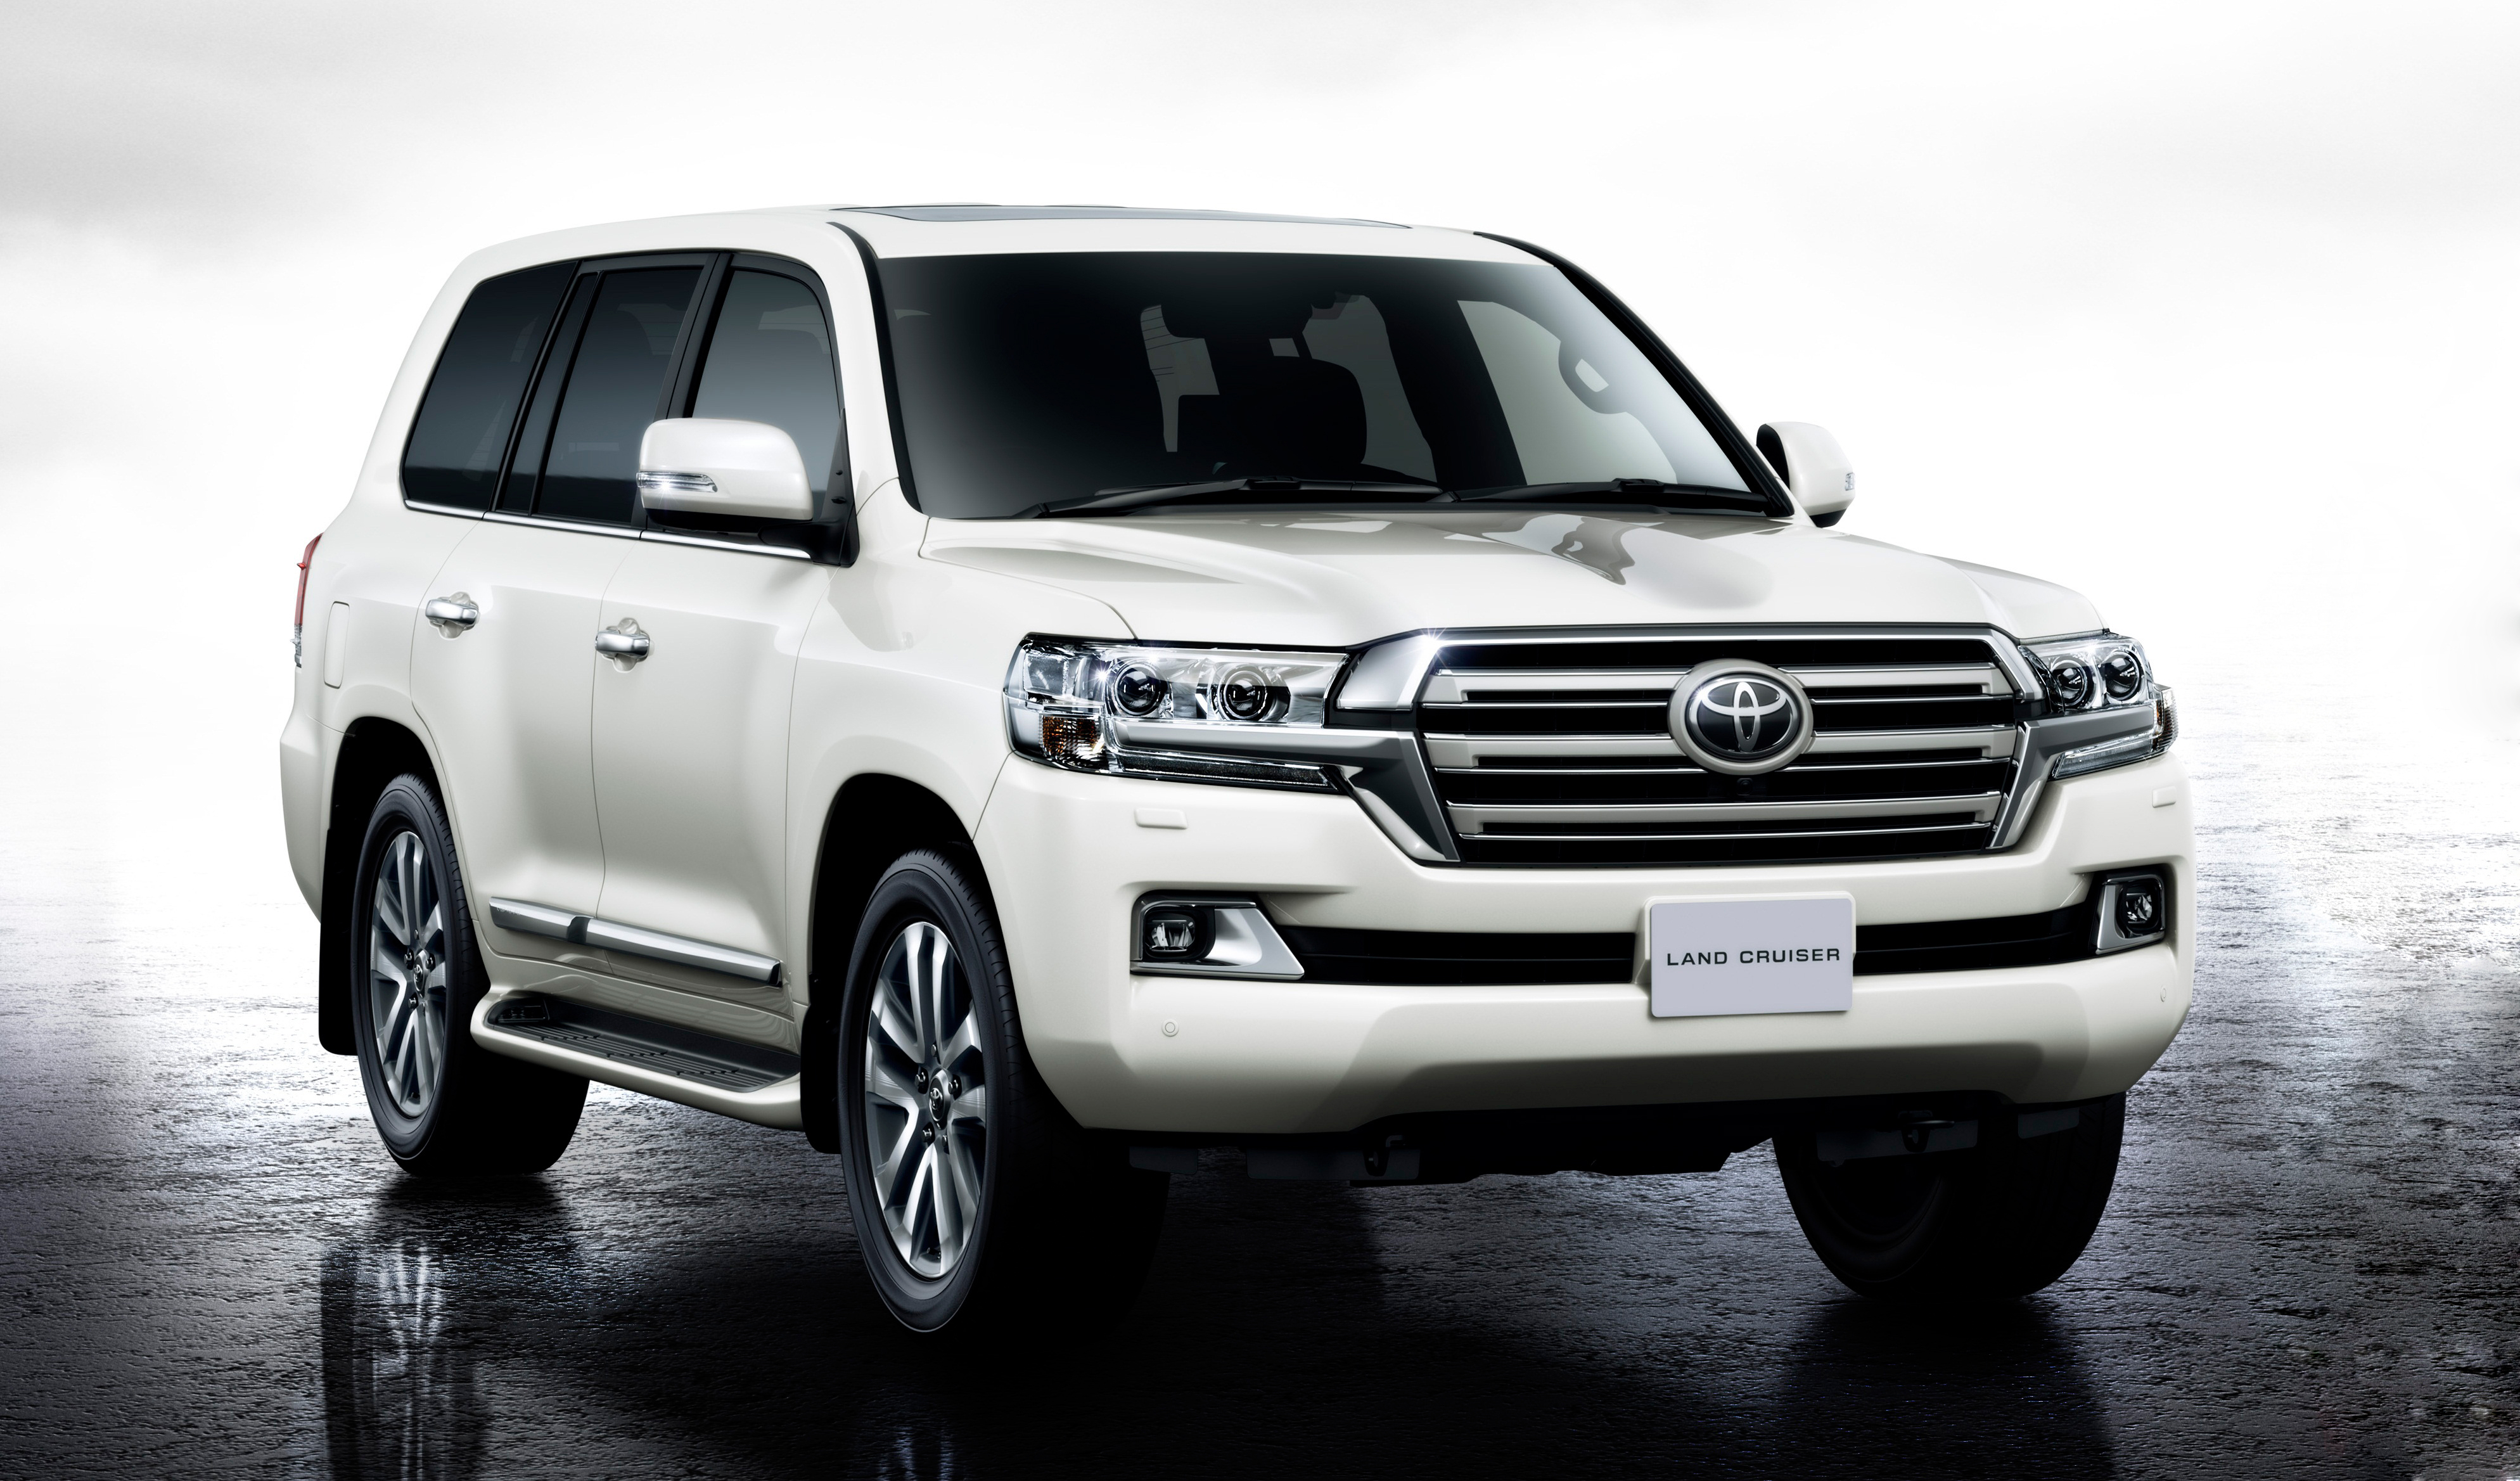 new toyota land cruiser 200 photo gallery car gallery. Black Bedroom Furniture Sets. Home Design Ideas